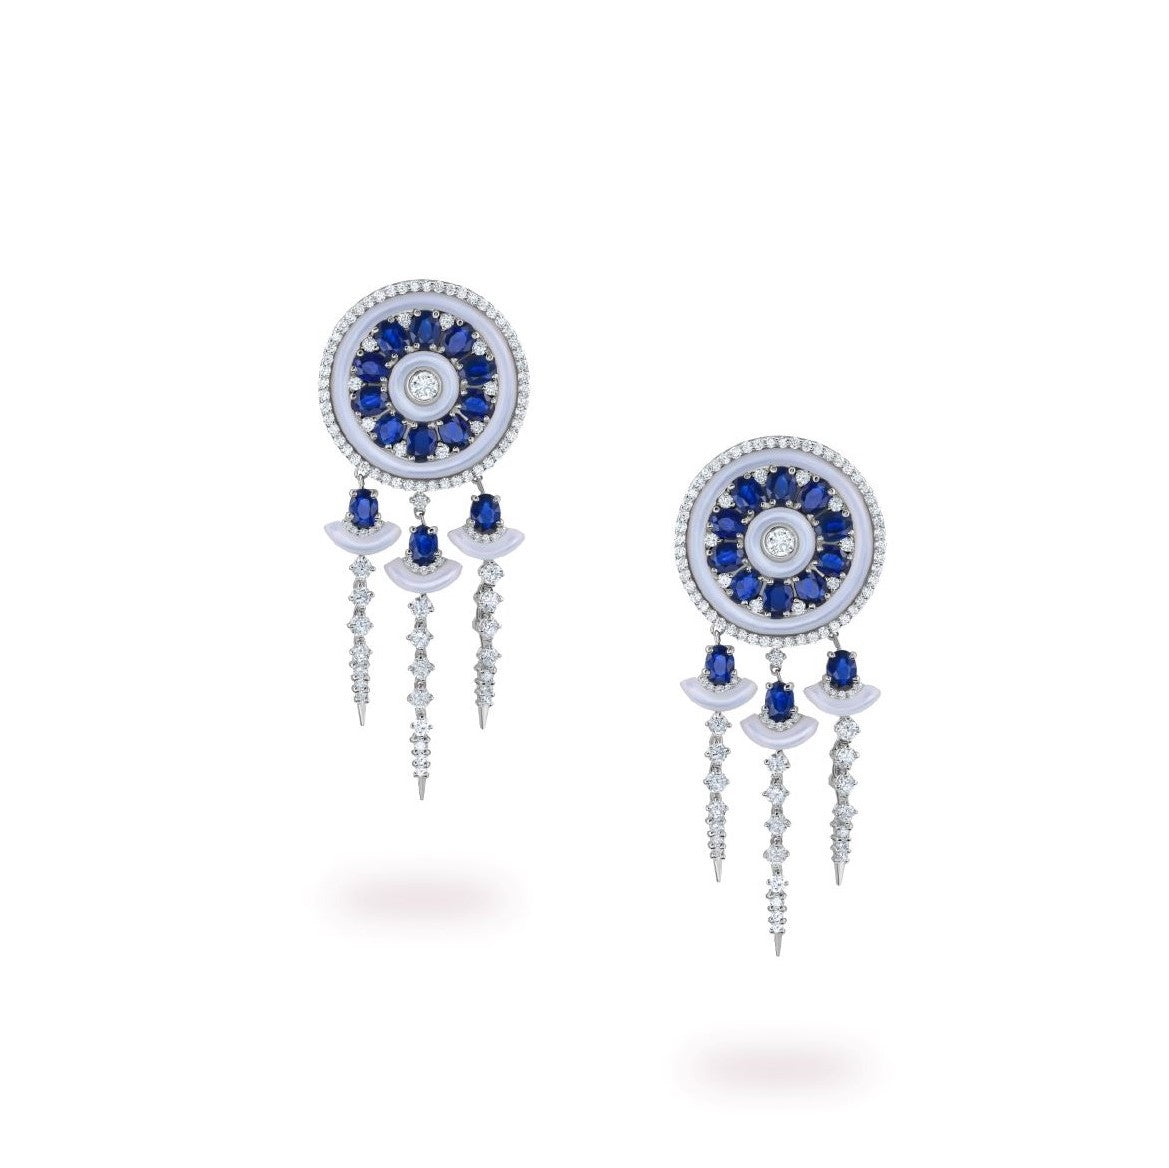 Diamond earring in Saudi Arabia